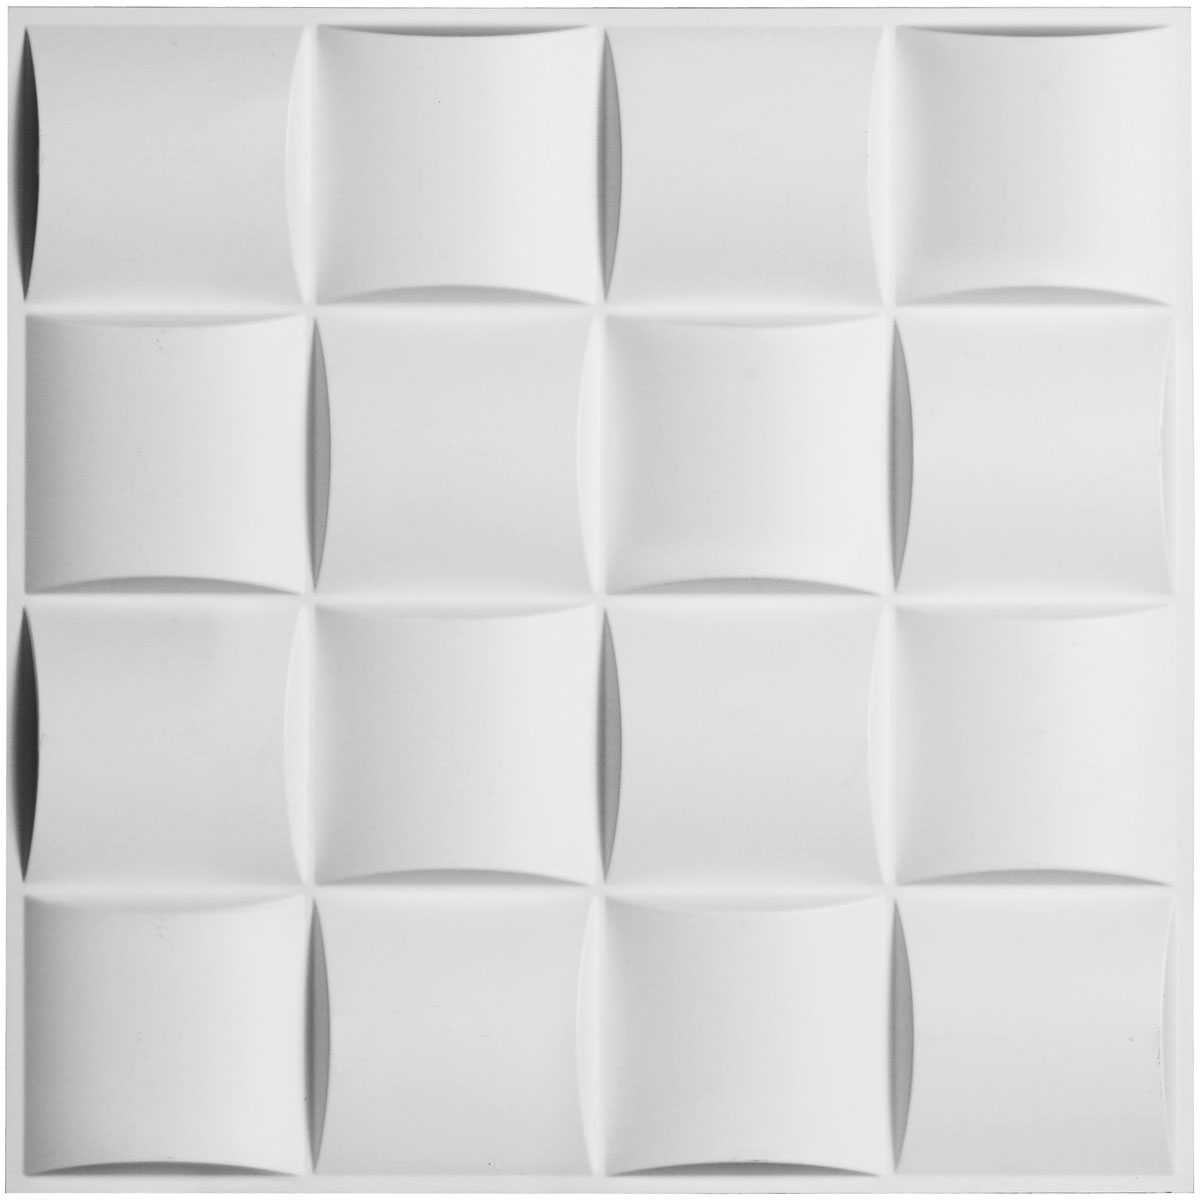 19 5/8'W x 19 5/8'H Baile EnduraWall Decorative 3D Wall Panel, White